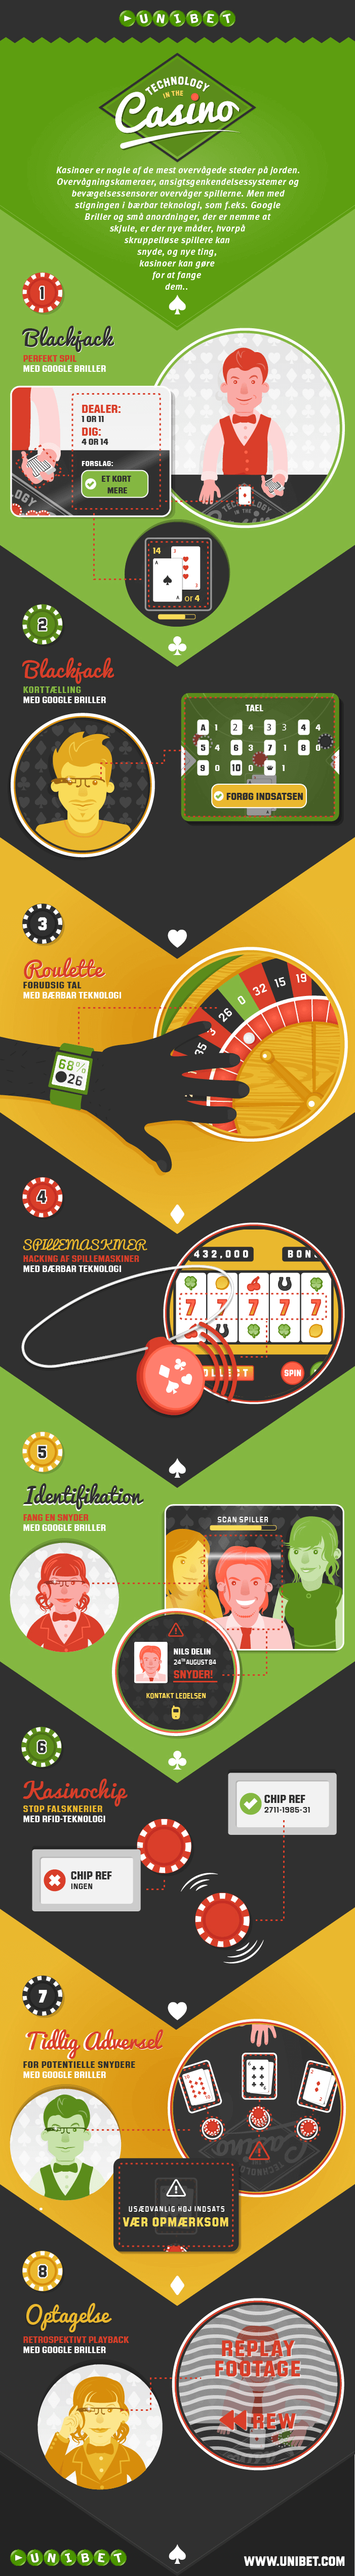 ux-casino-infographic-Danish